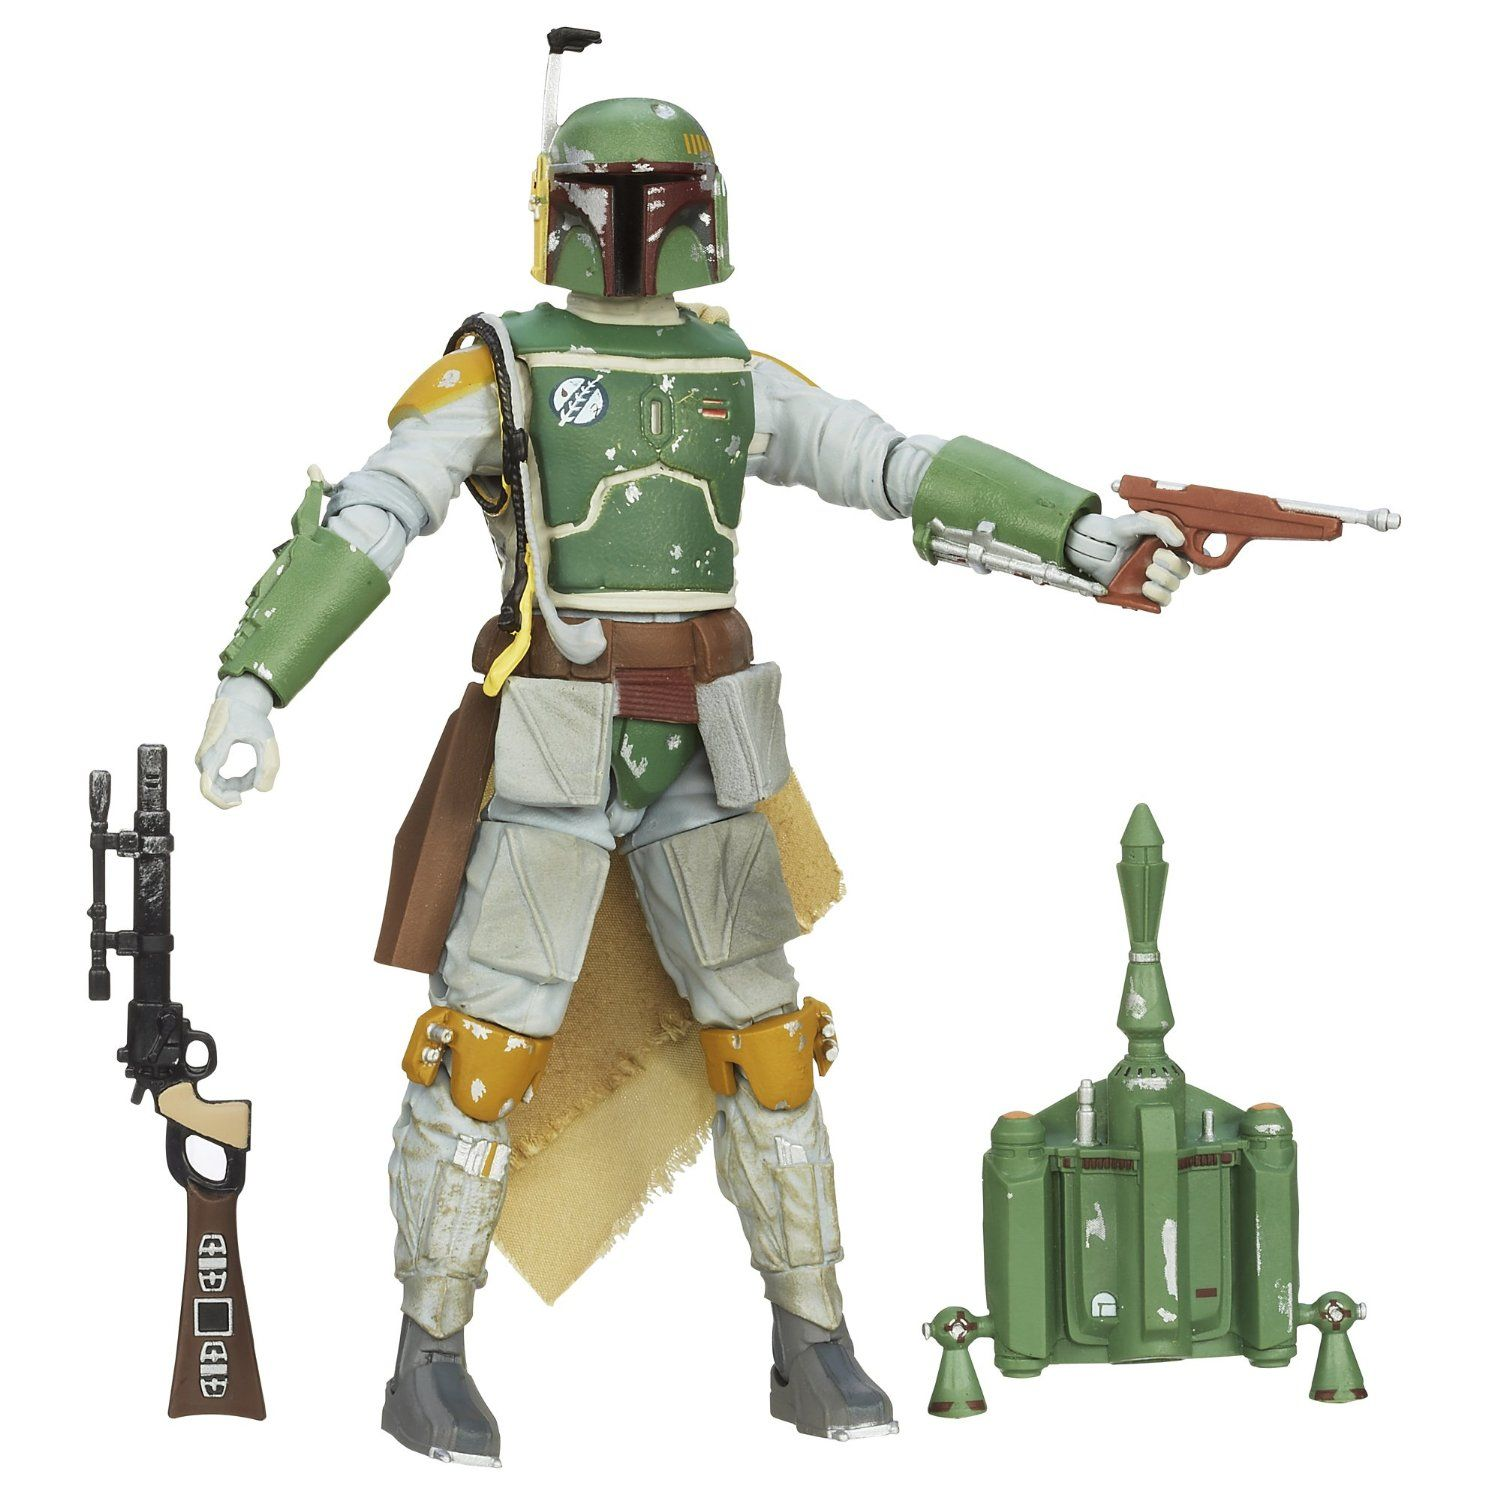 Amazon.com: Star Wars The Black Series Boba Fett Figure 6 Inches: Toys & Games